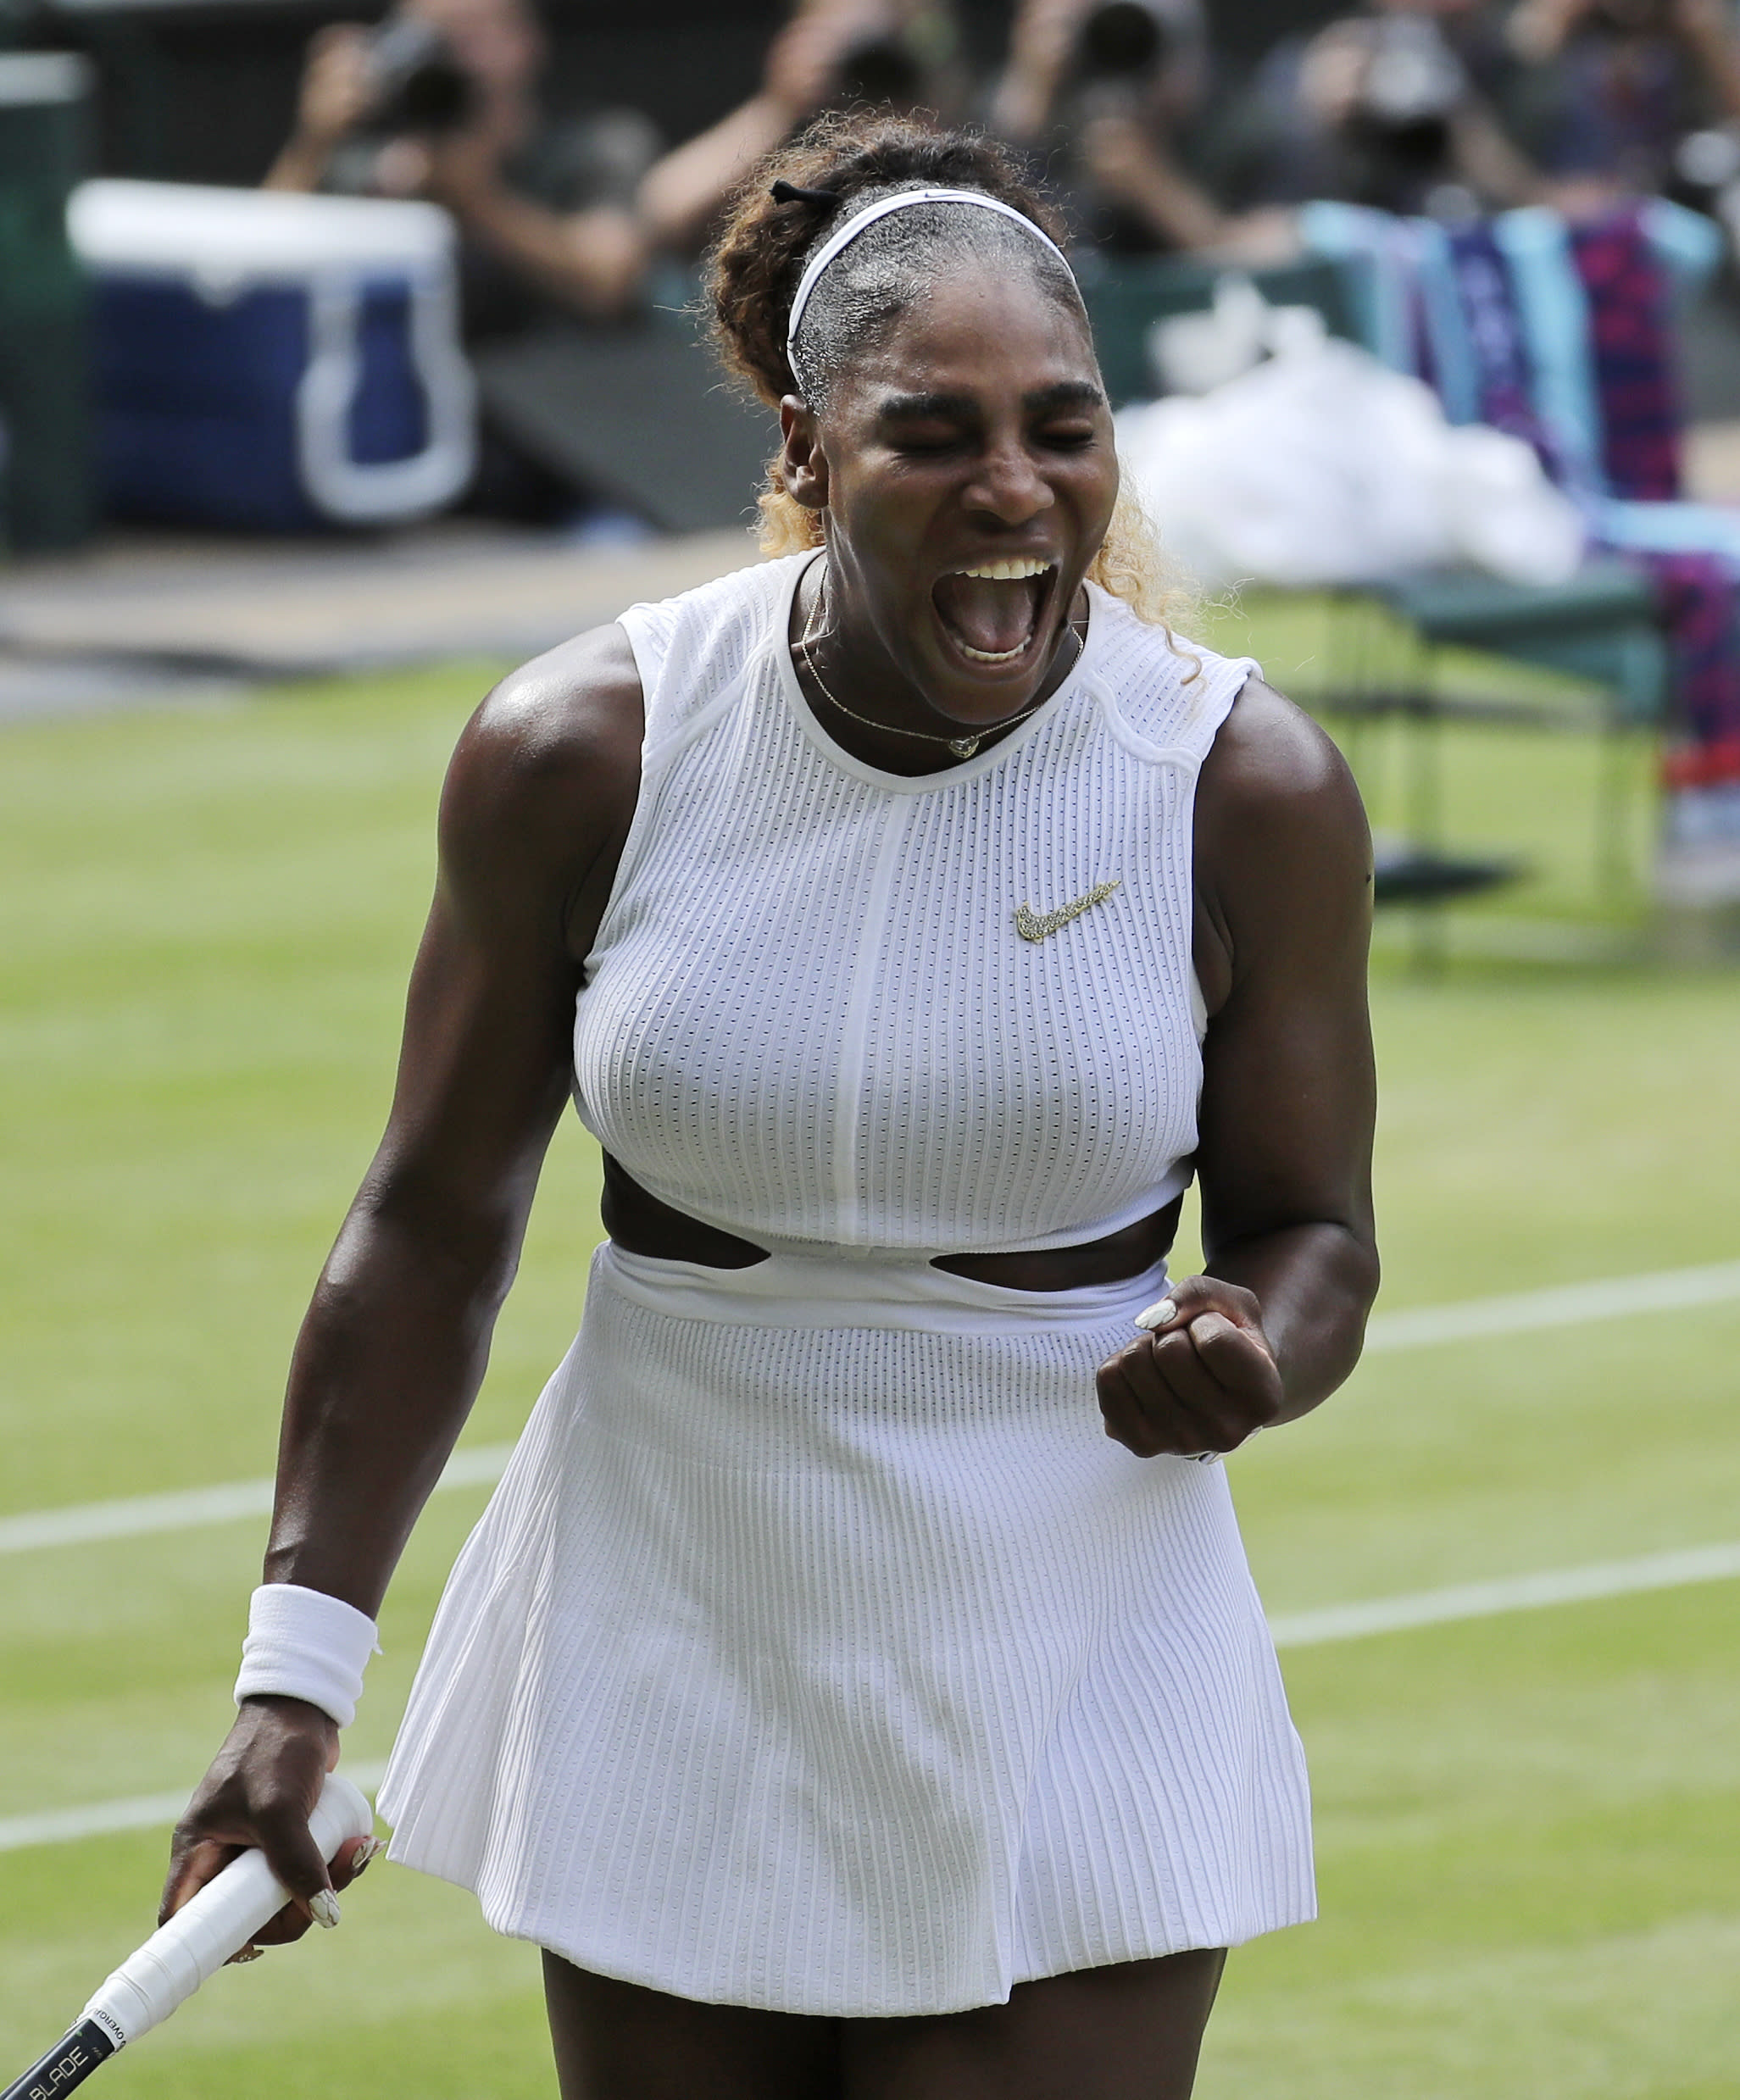 Wimbledon 2019: Serena Williams' coach warns her about 'dangerous' Simona Halep